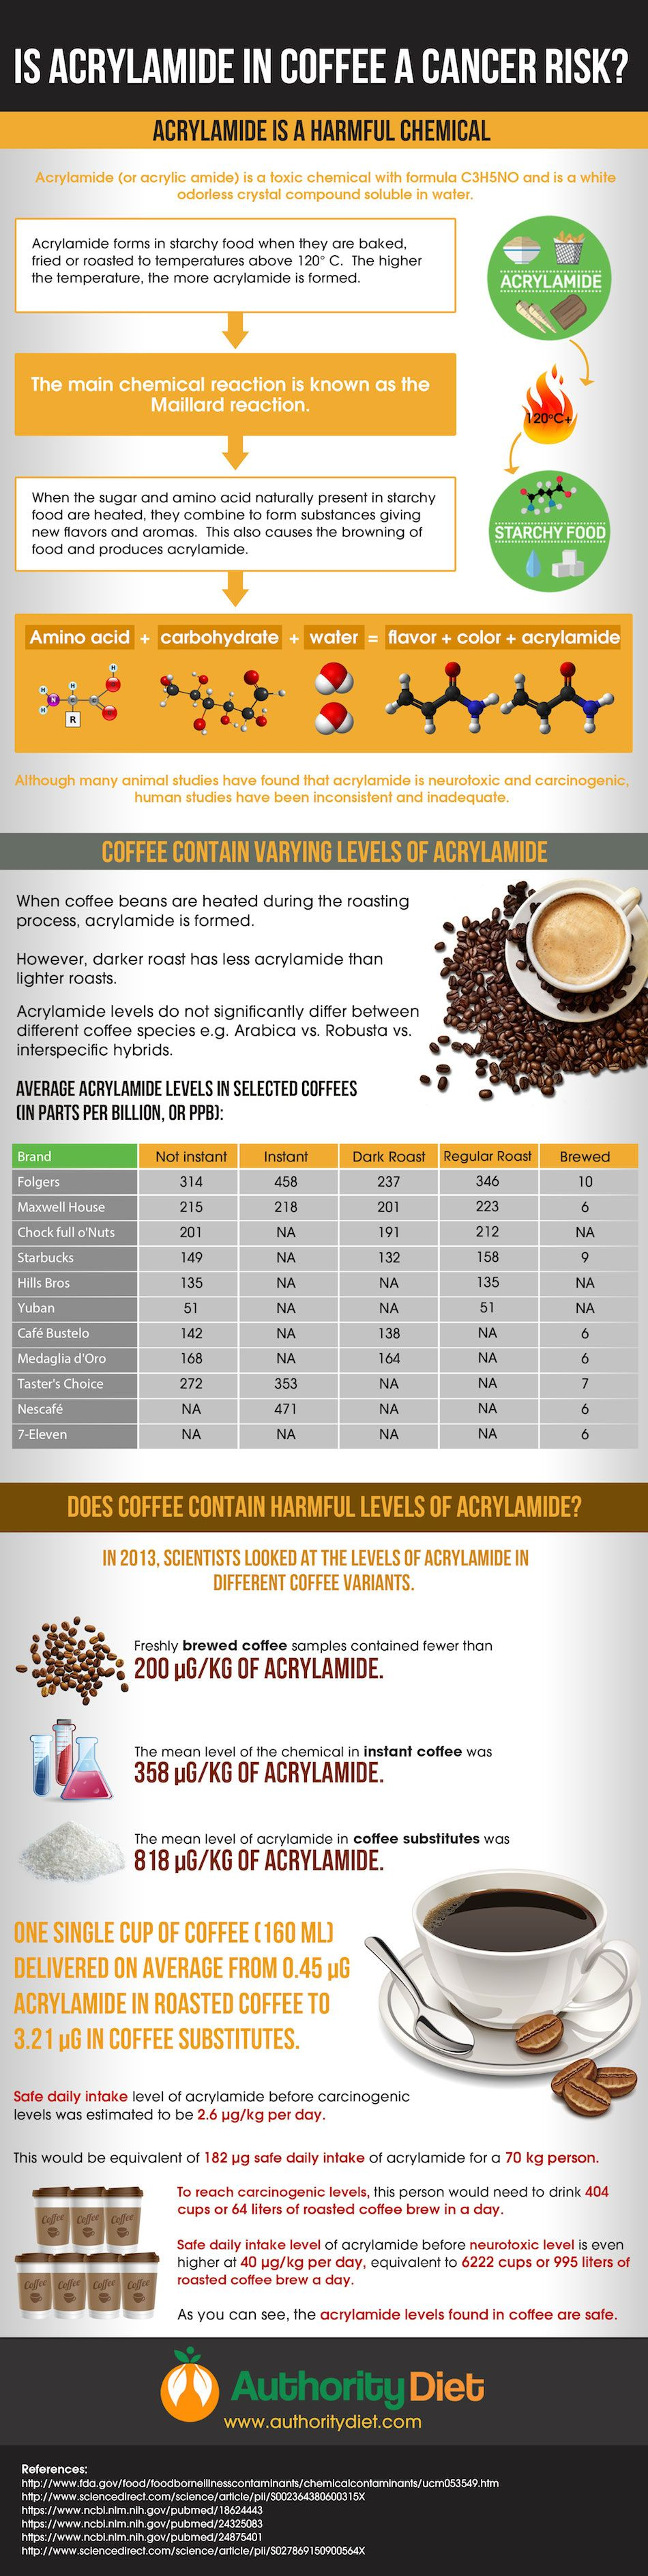 Is Acrylamide In Coffee a Cancer Risk? #Infographic